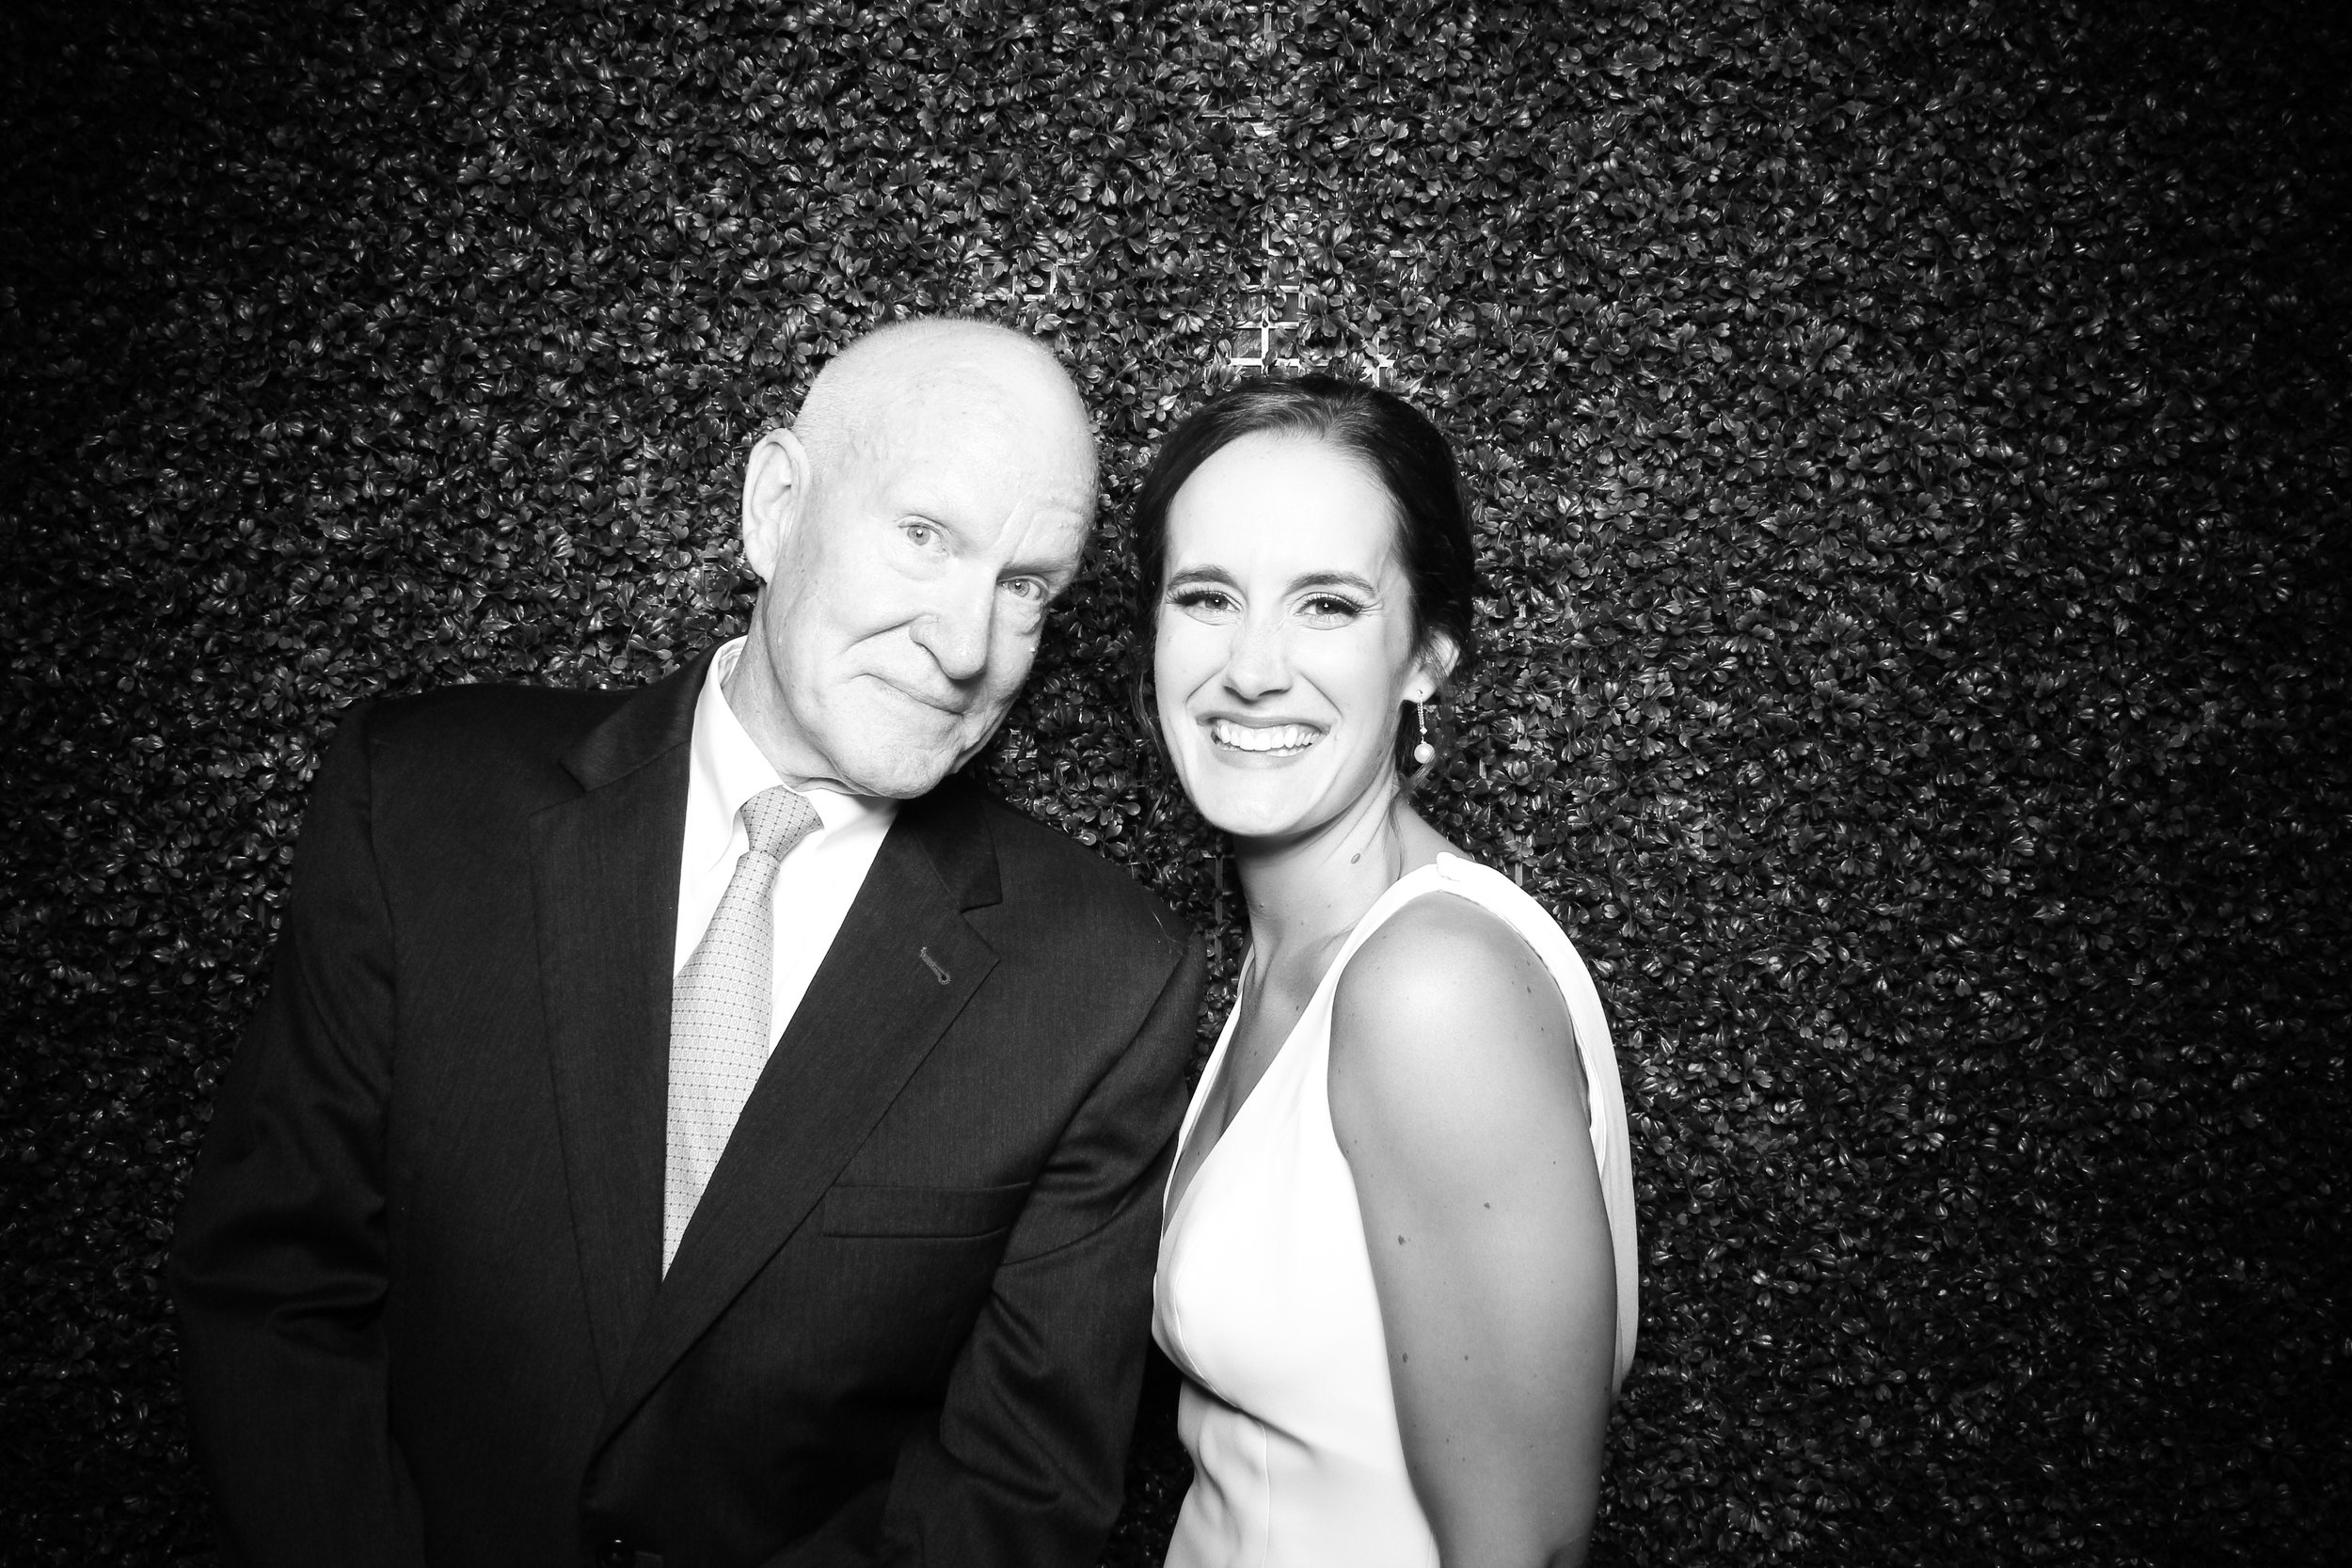 Ivy_Room_Chicago_Photo_Booth_Wedding_14.jpg